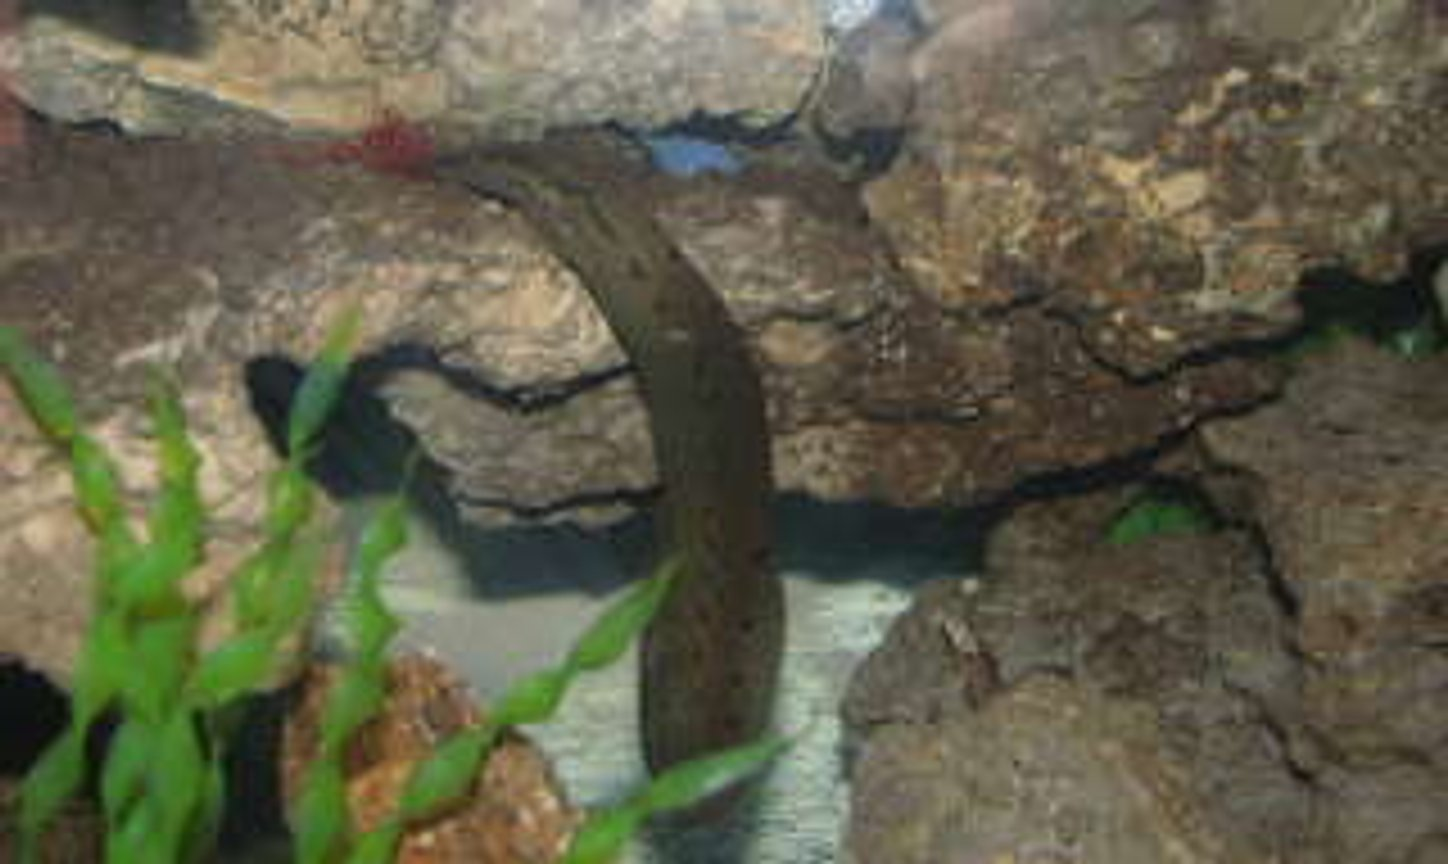 freshwater fish - mastacembelus armatus - tire track eel stocking in 55 gallons tank - eel eating